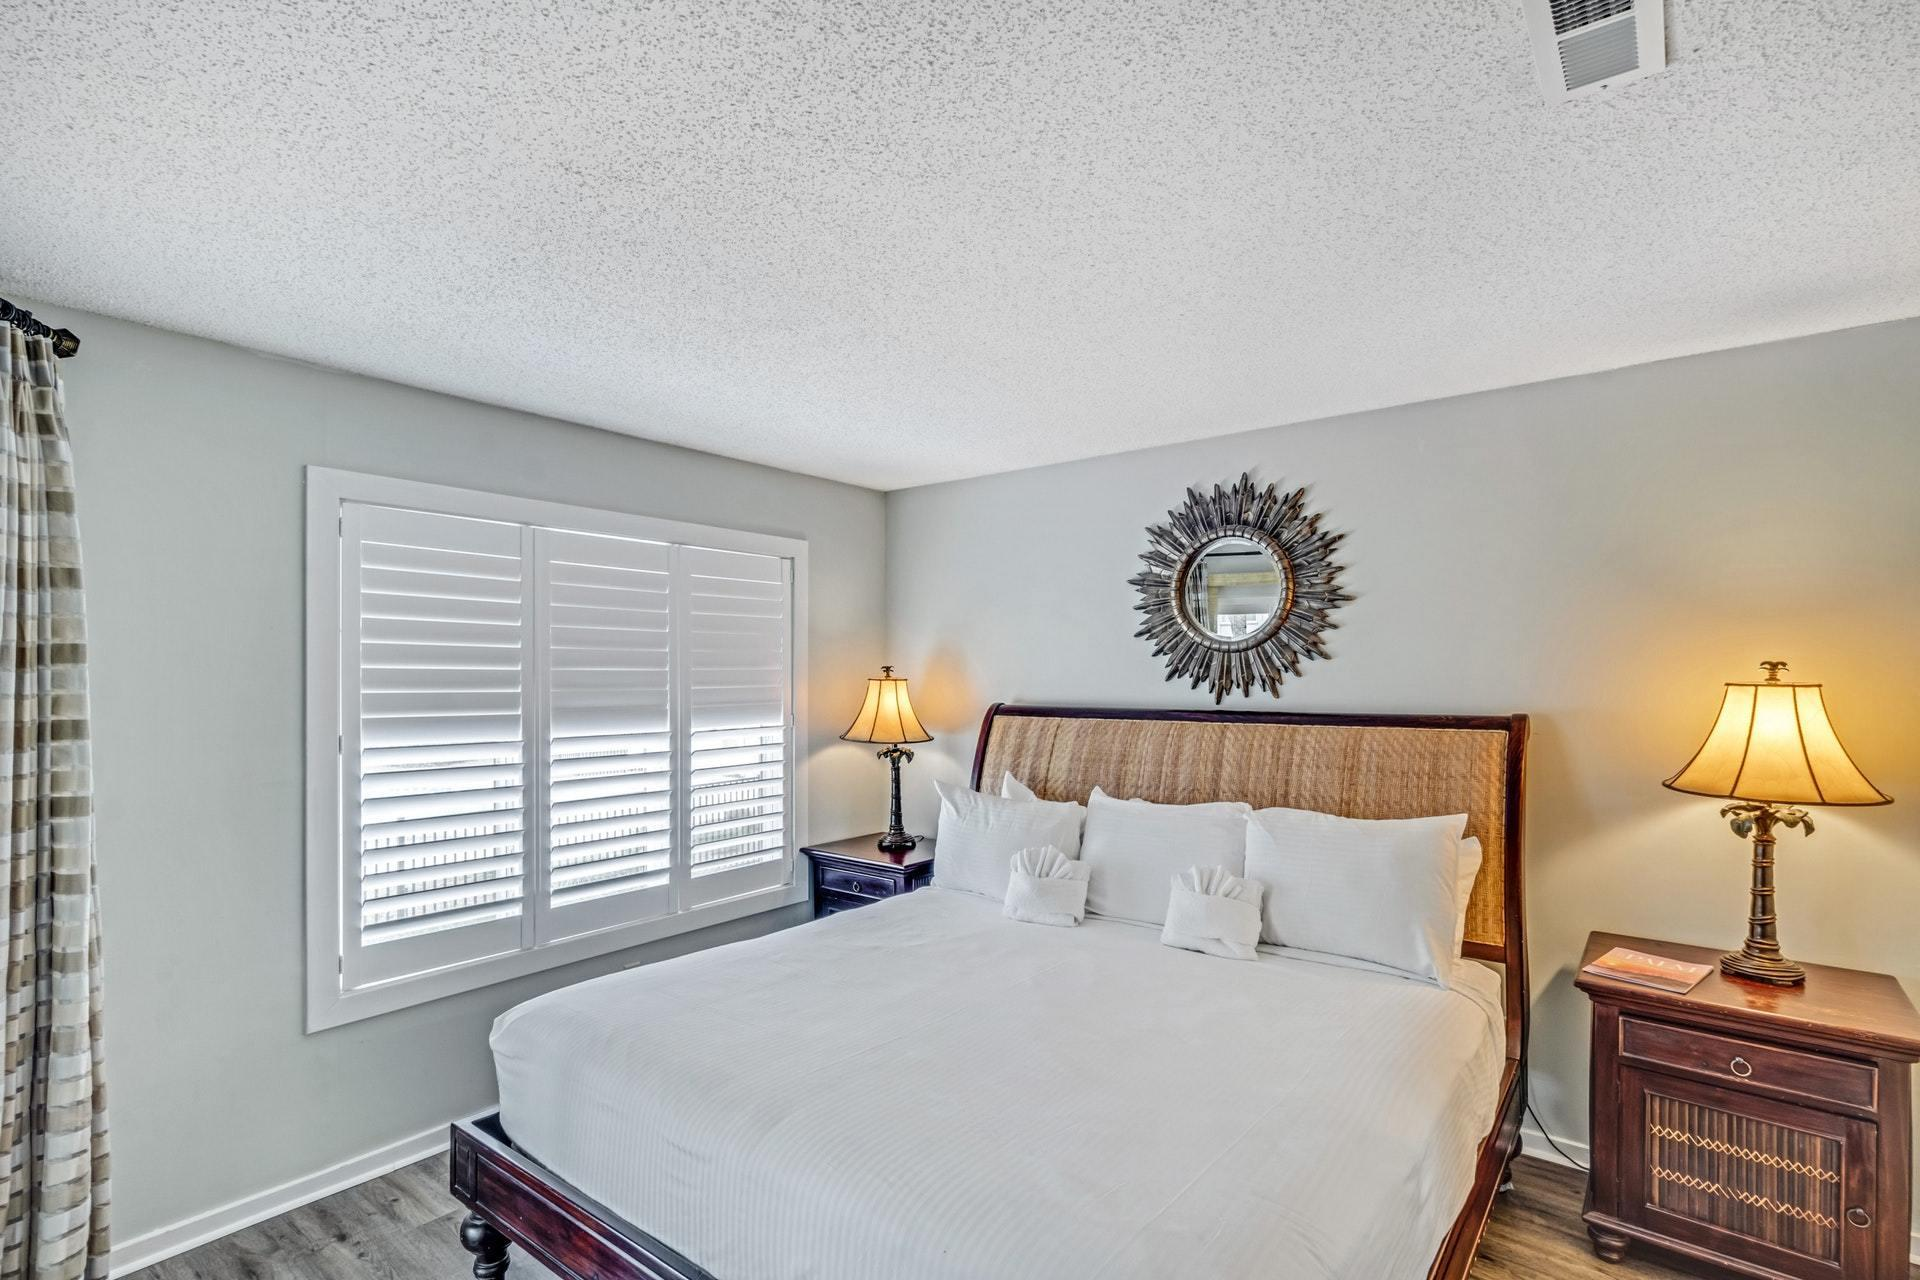 Wild Dunes Resort Homes For Sale - 102 I Tidewater, Isle of Palms, SC - 0